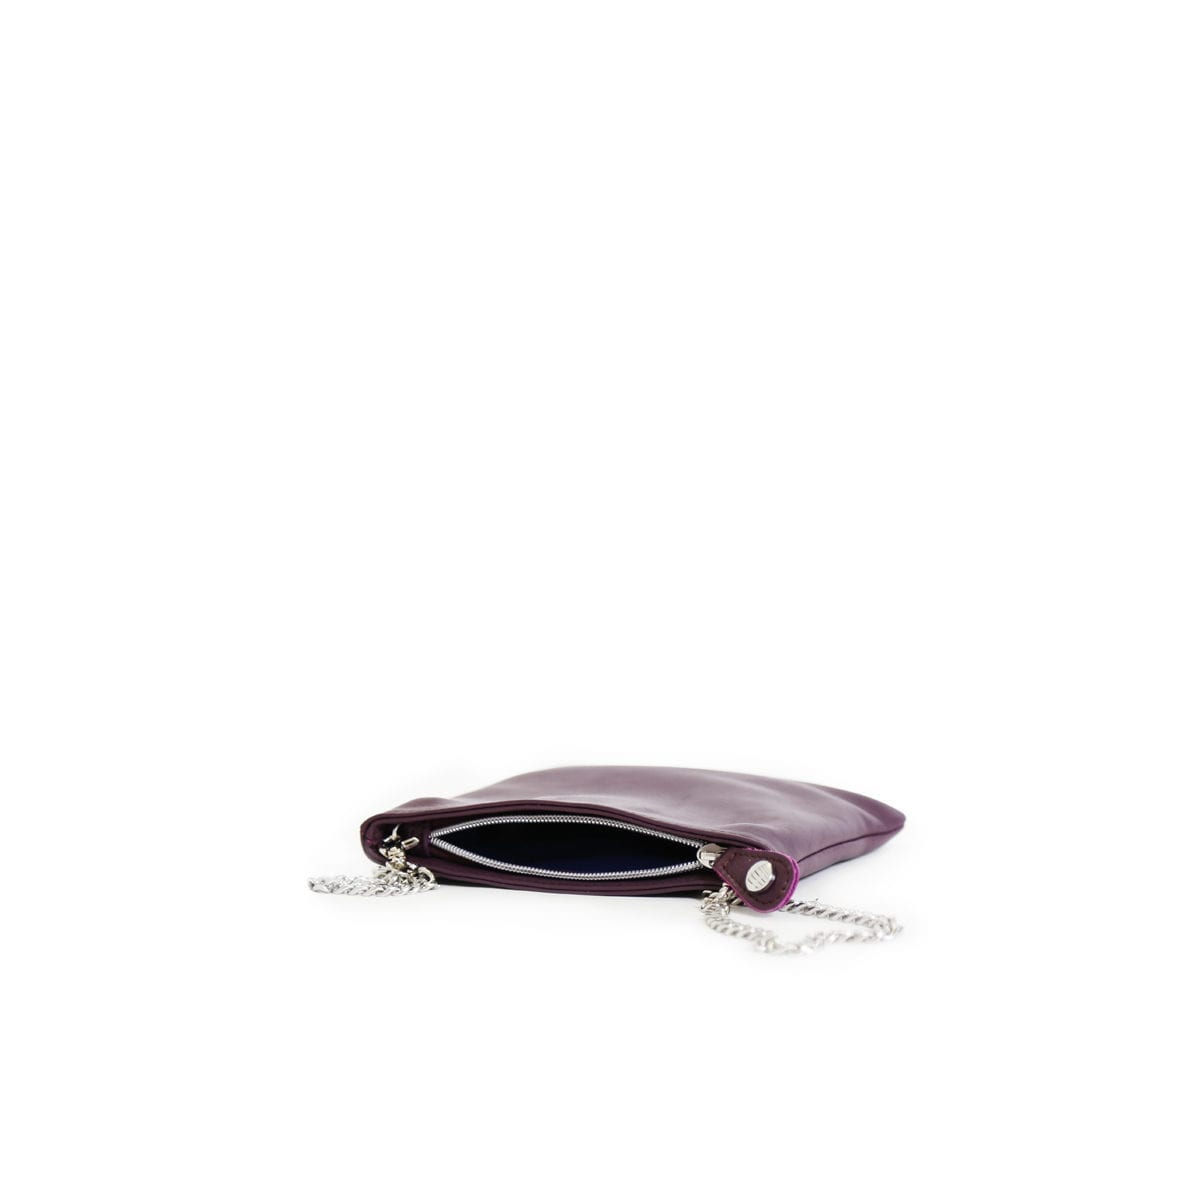 LUMI Laura Envelope Clutch in beautiful rich grape colour.